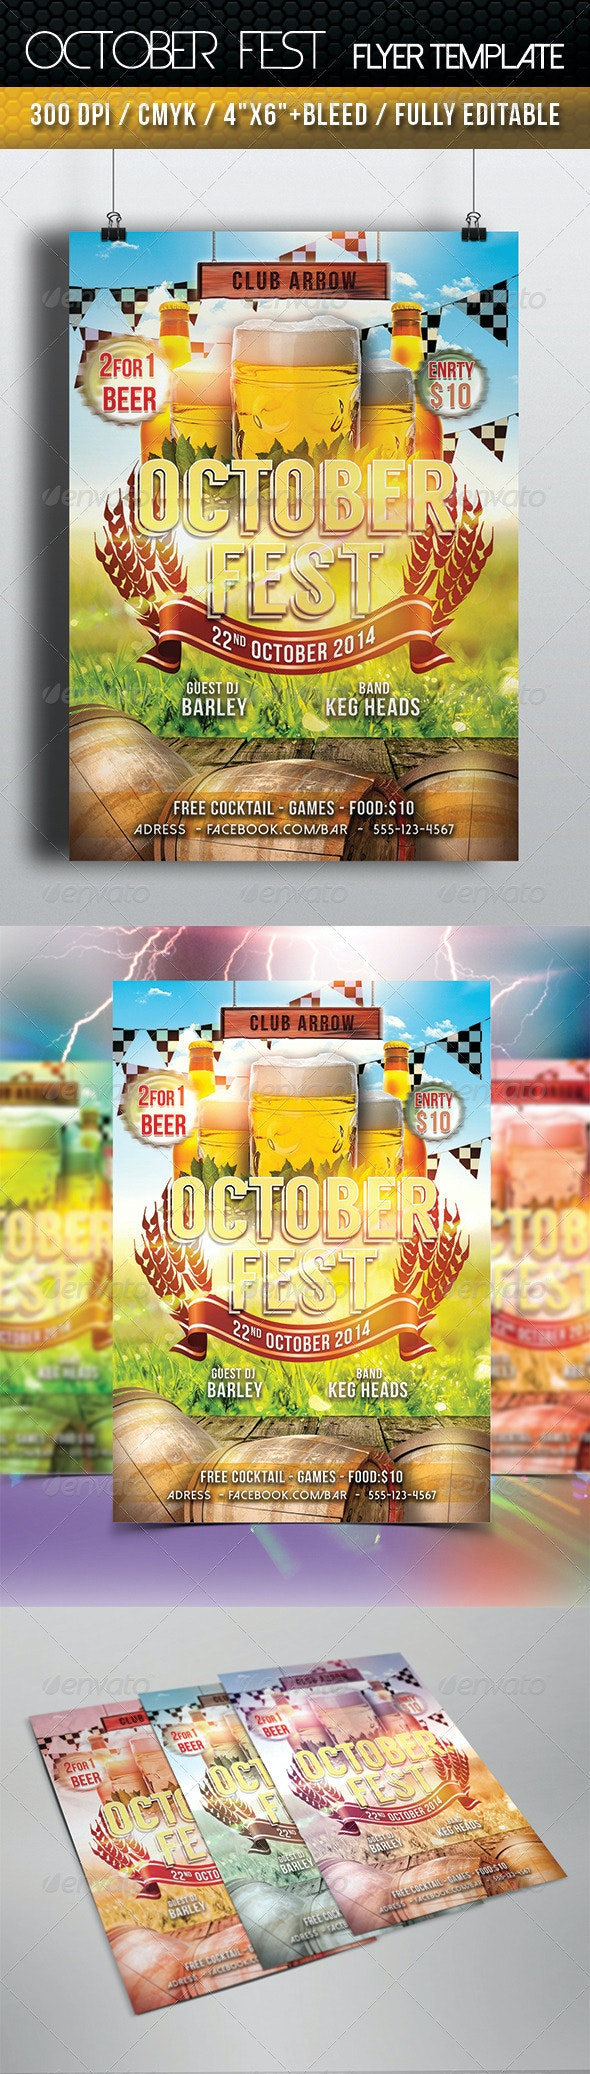 October Fest Flyer Template - Clubs & Parties Events